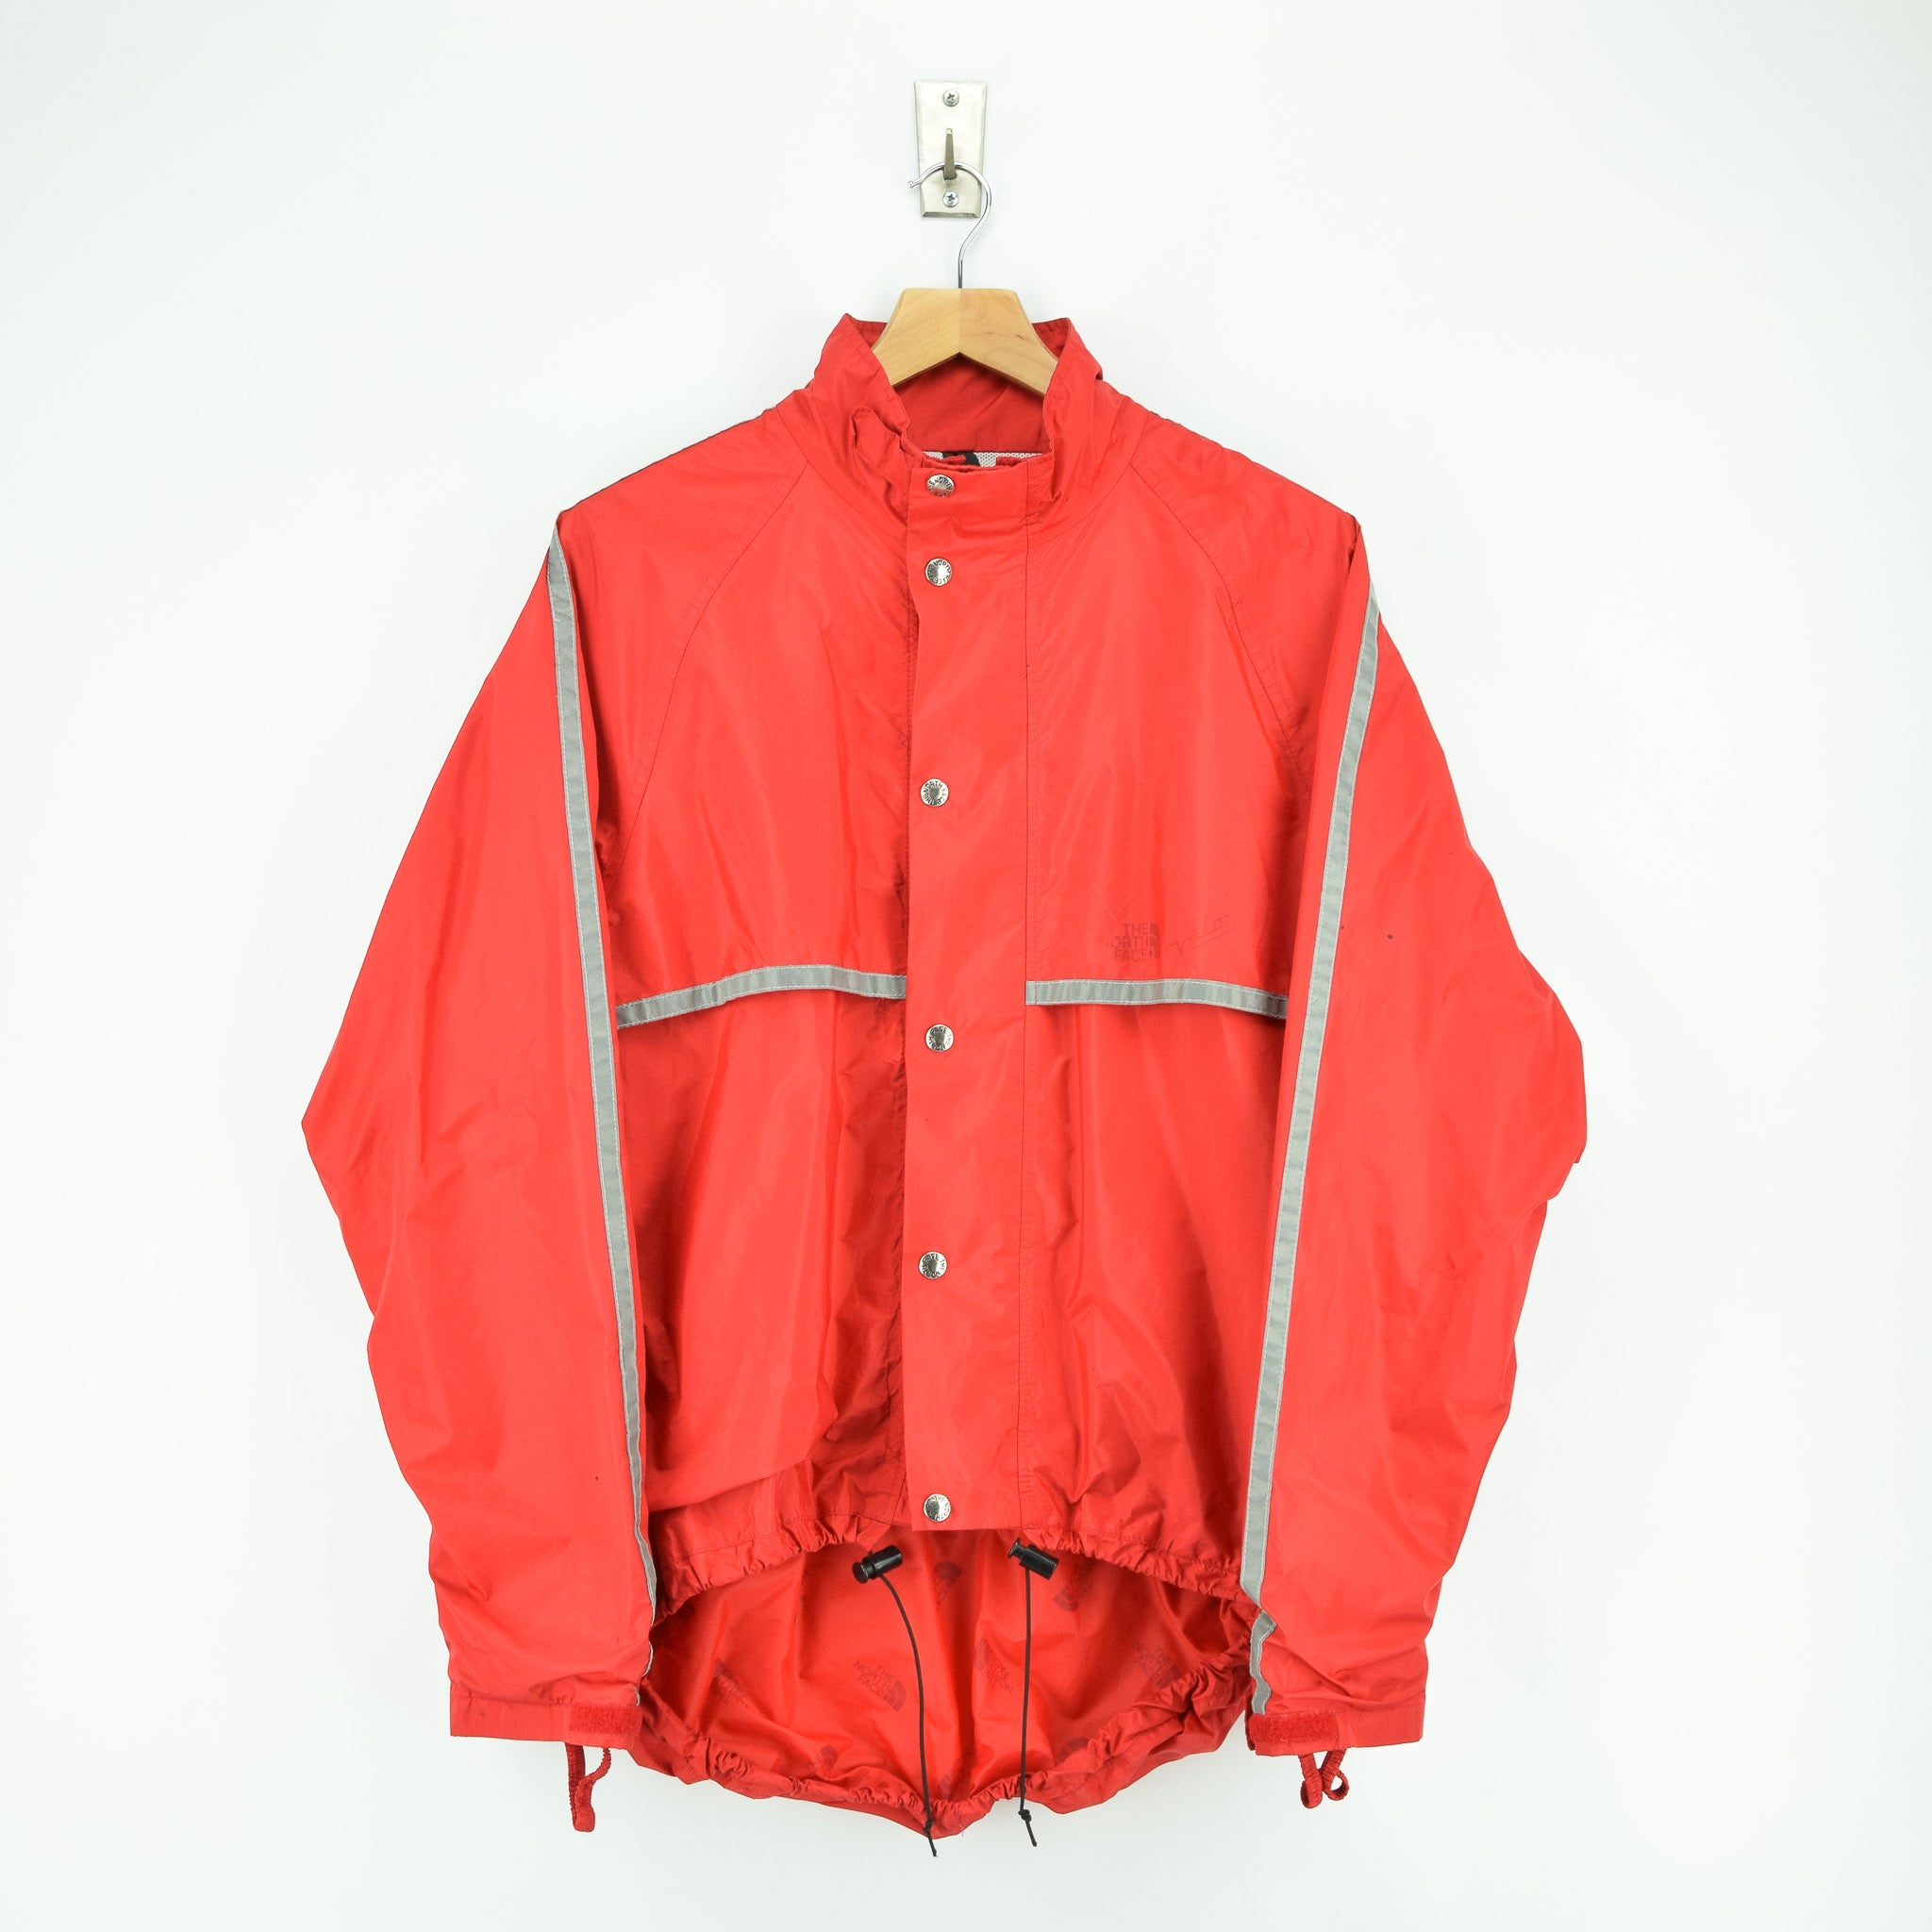 Vintage North Face Red Goretex Velo Biker Jacket Made in USA M front hem